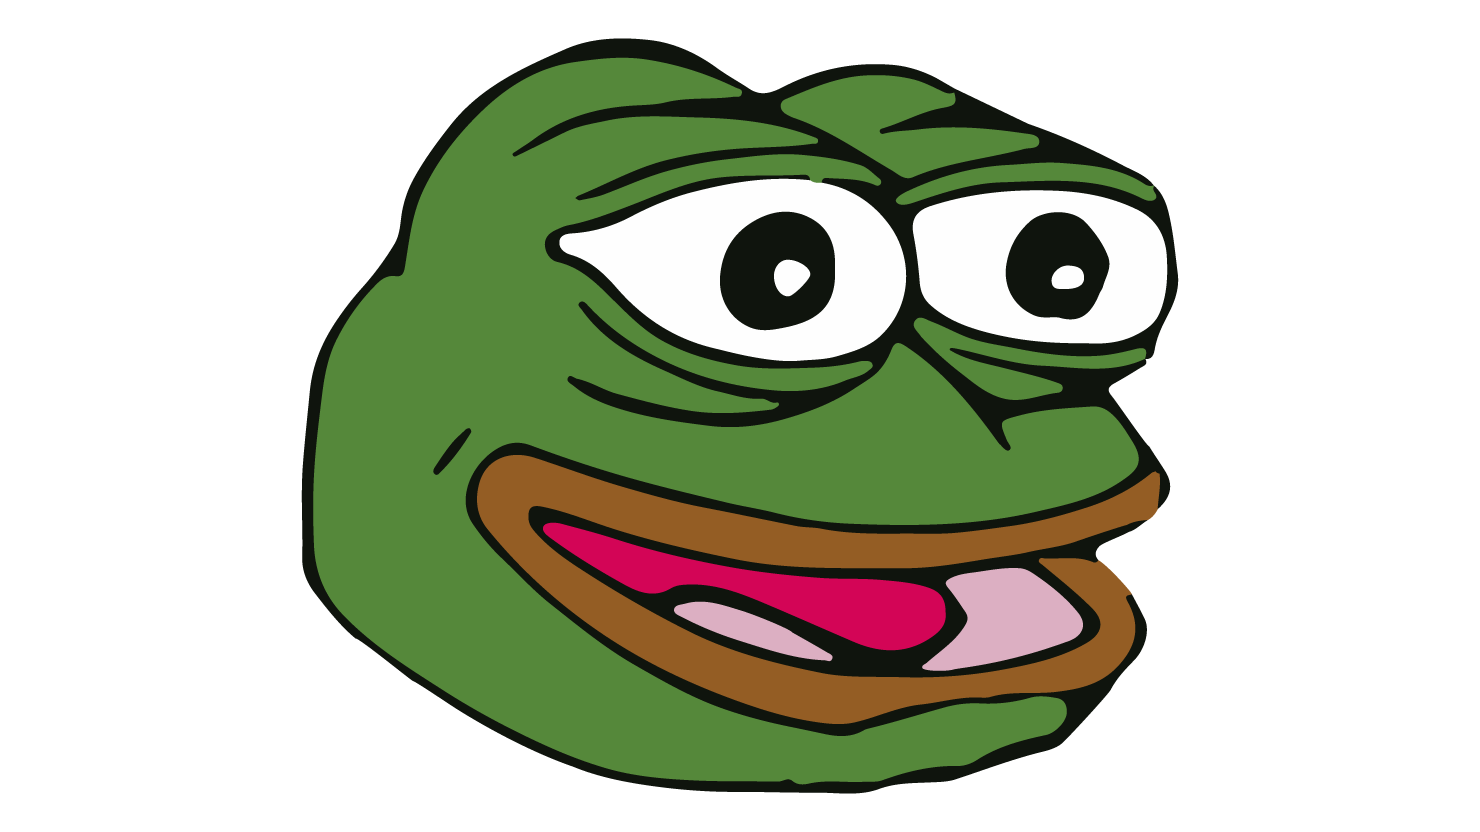 Feelsbadman emoji png. Feels good man know